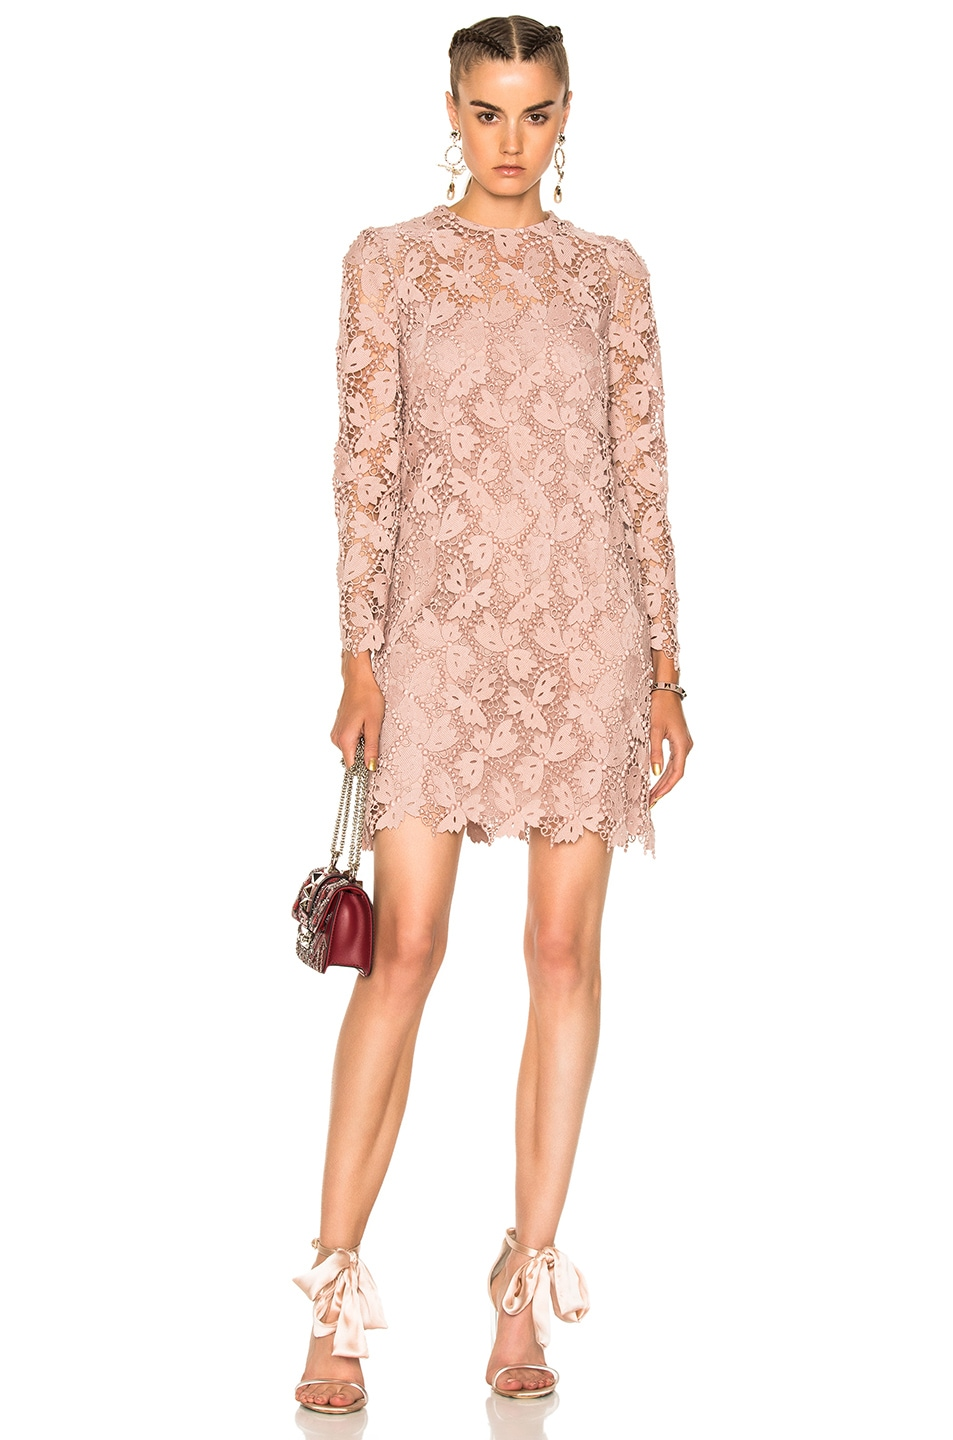 Valentino Embellished Lace Long Sleeve Dress in Pink,Neutrals